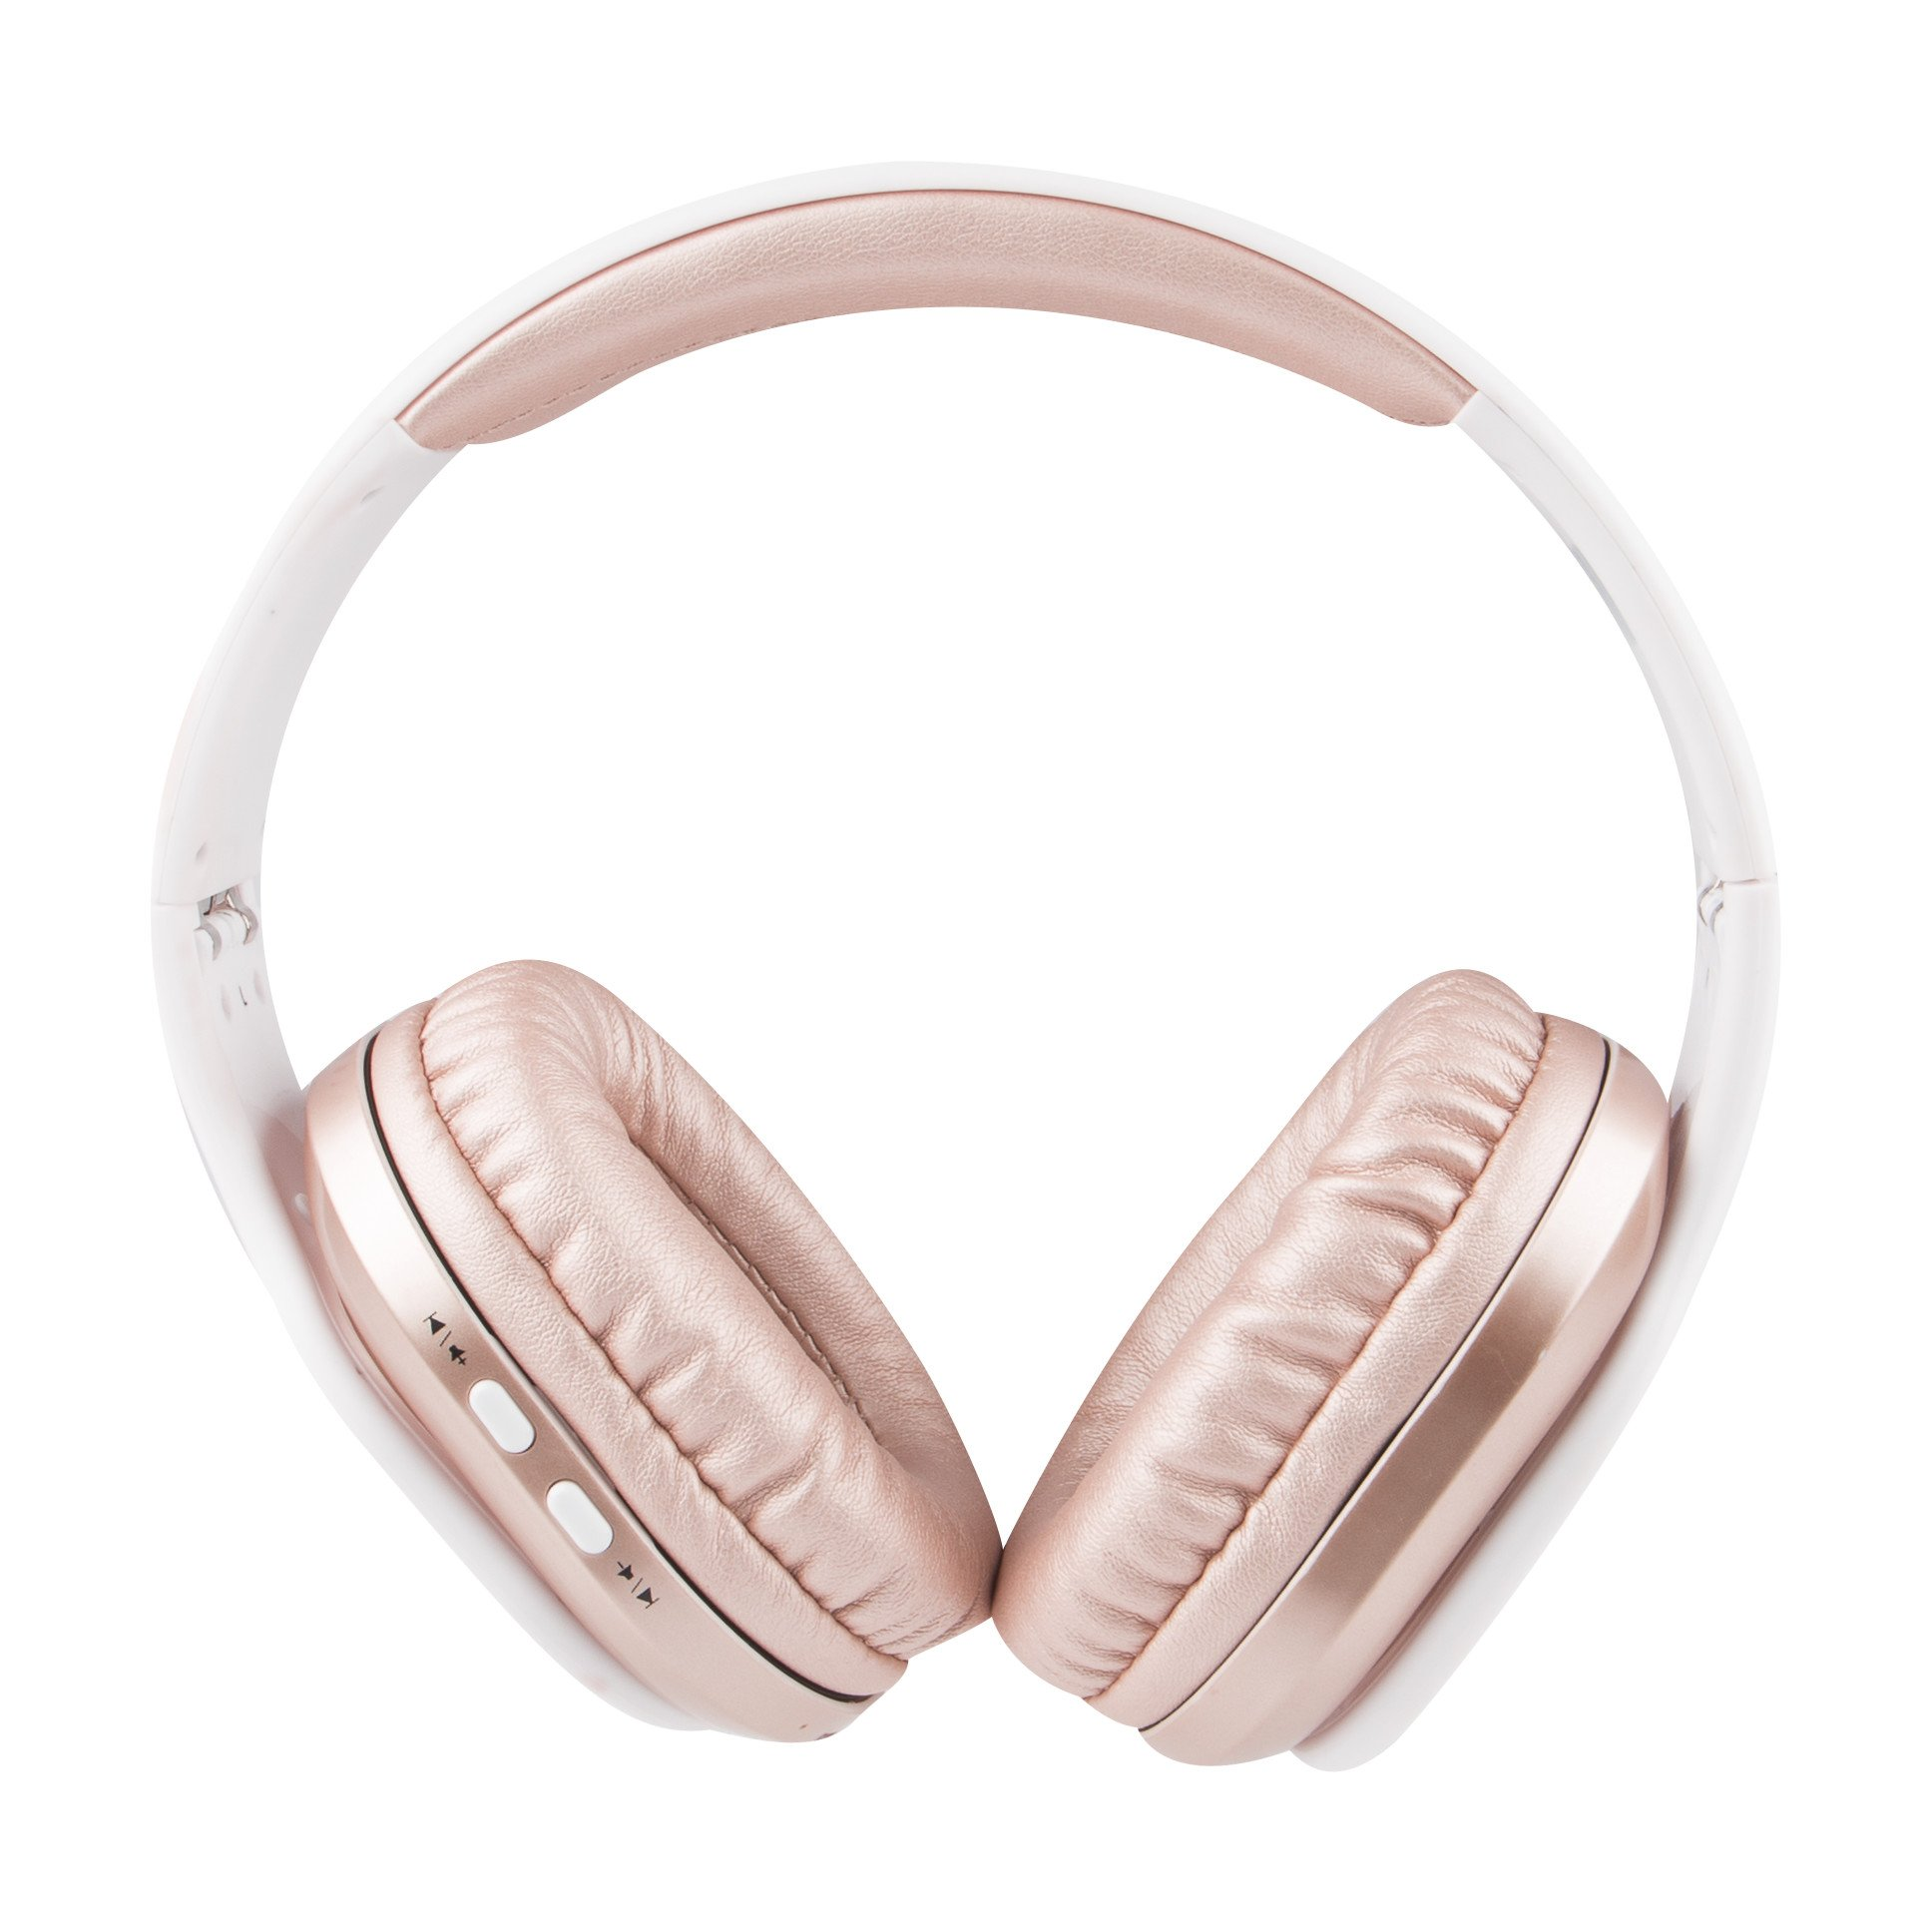 Auriculares Altec Lansing Mzx667-rg Evolution2 A Prueba De Agua Bluetooth Rose Gold